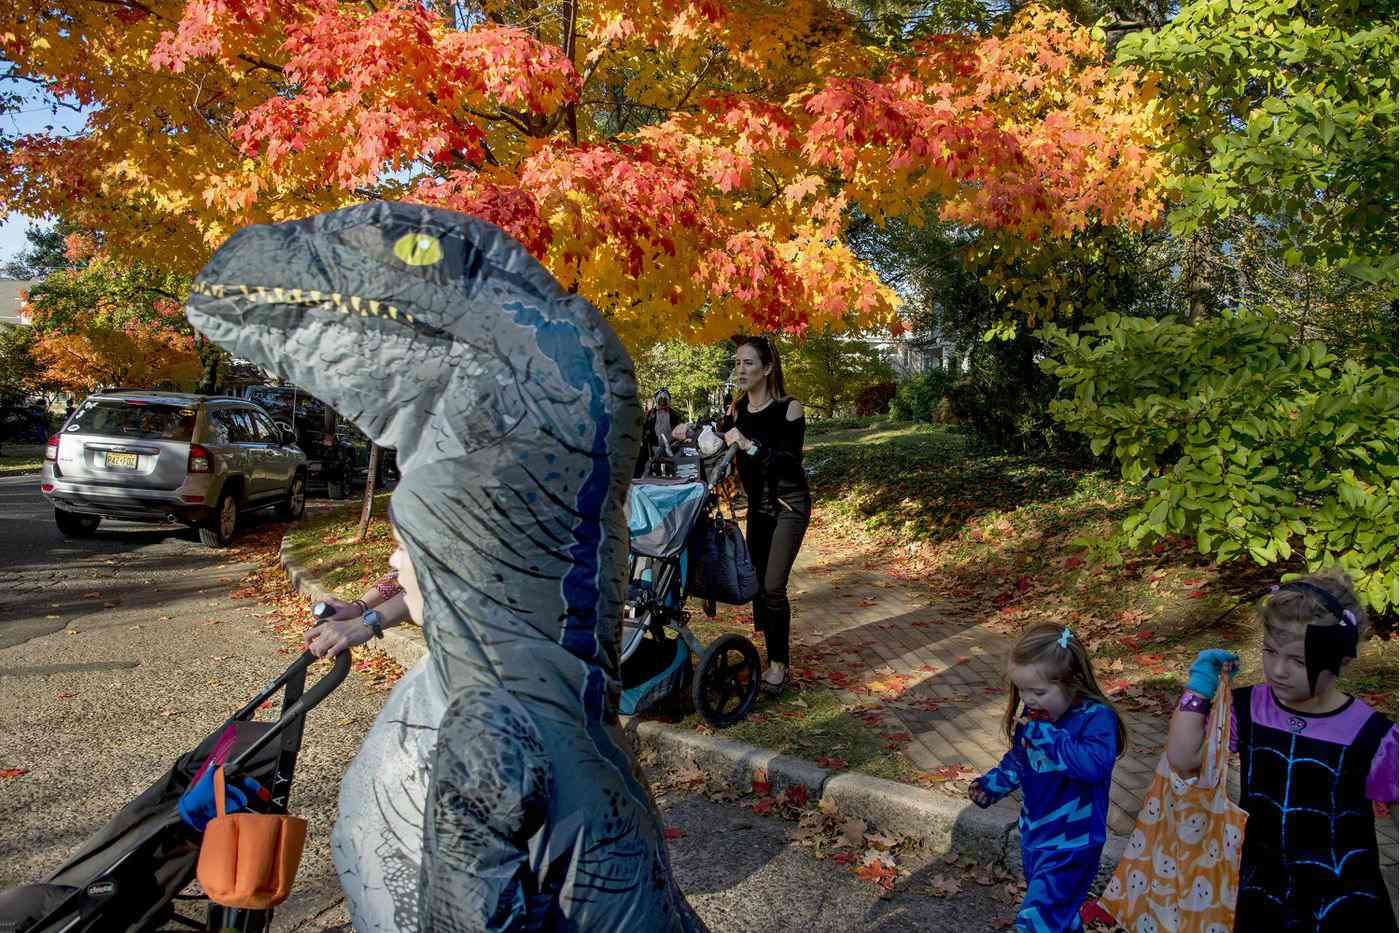 Local Towns Like Upper Darby Letting Families Decide on Trick or Treating